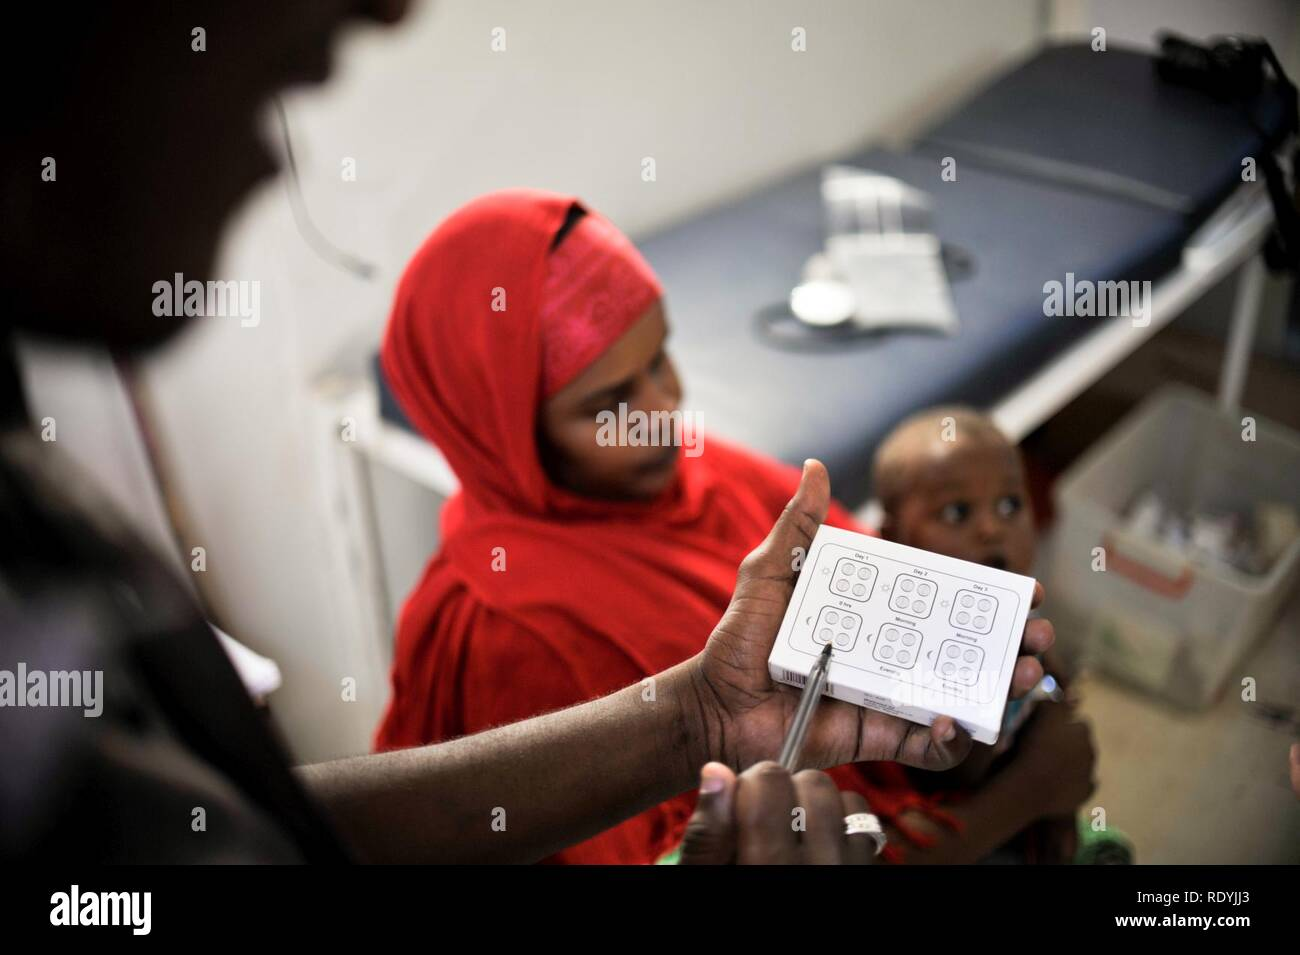 At a clinic held at Jazeera Training Camp on April 6, patients come to a free medical clinic in order to receive treatment for a variety of maladies. Many of the clinic's patients come from Jazeera (8634135908). - Stock Image